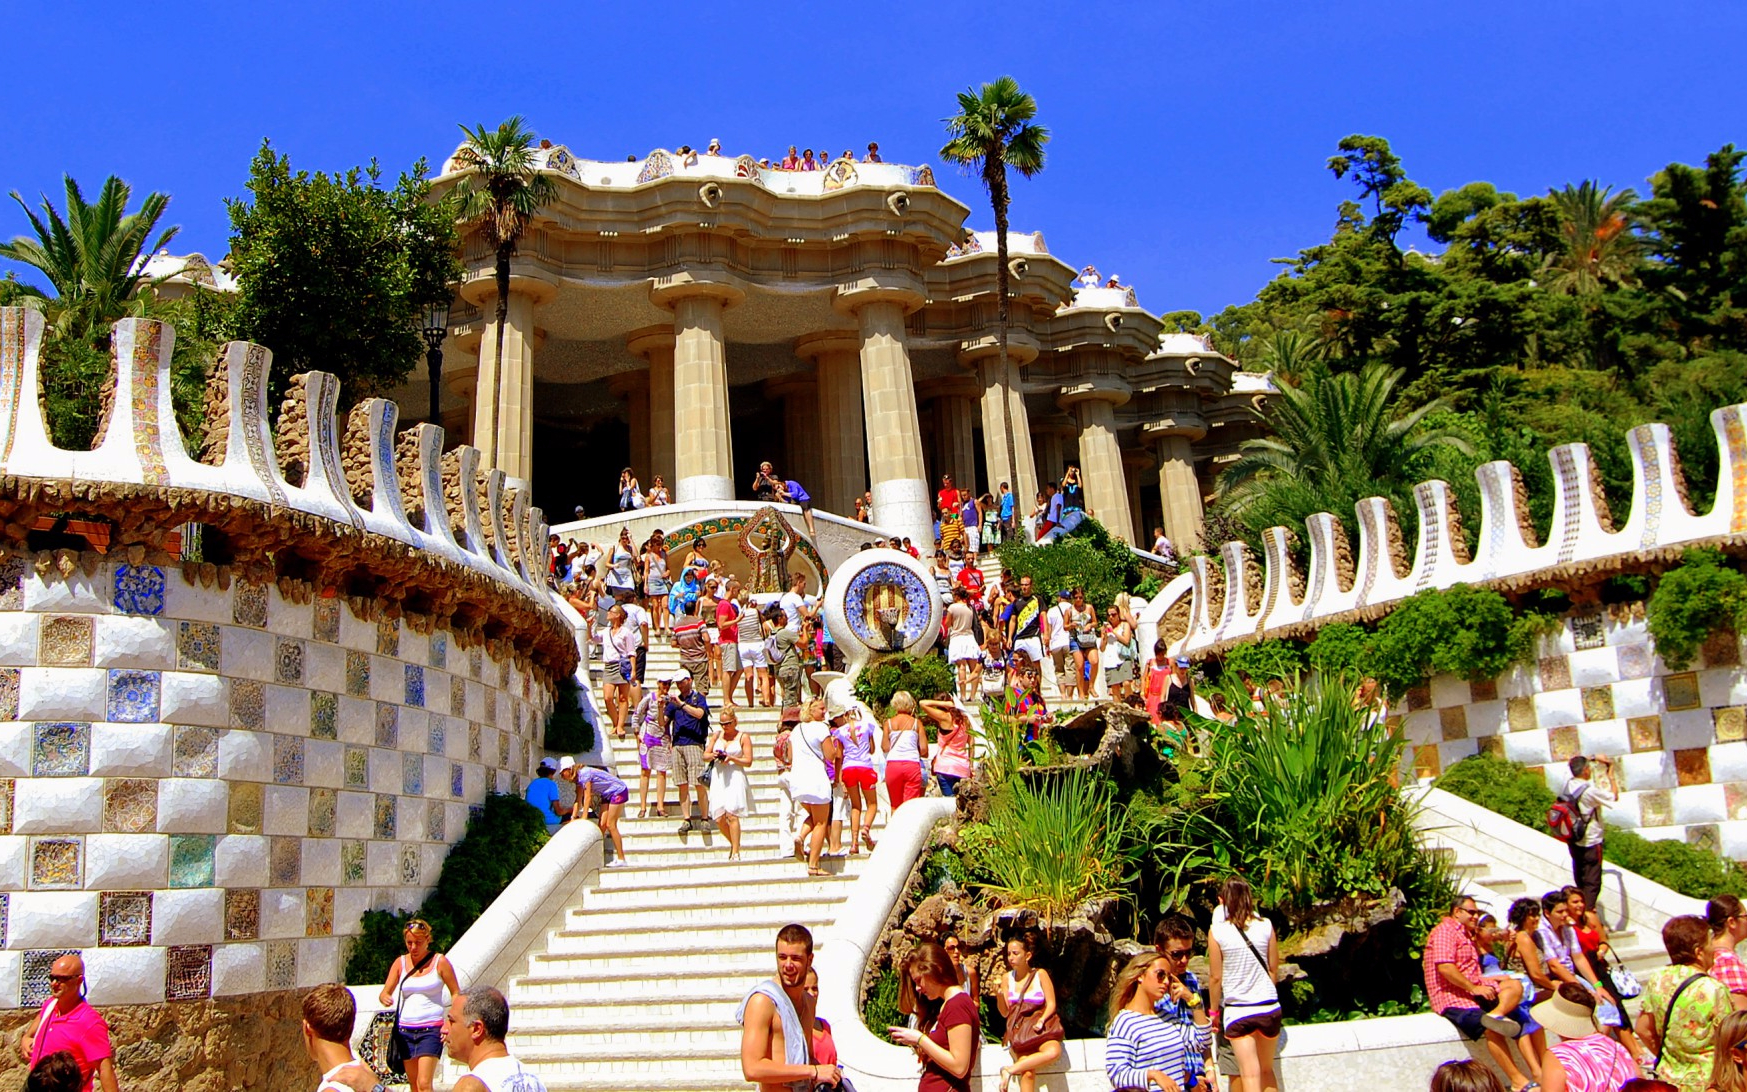 Park Guell Dragon Stairway